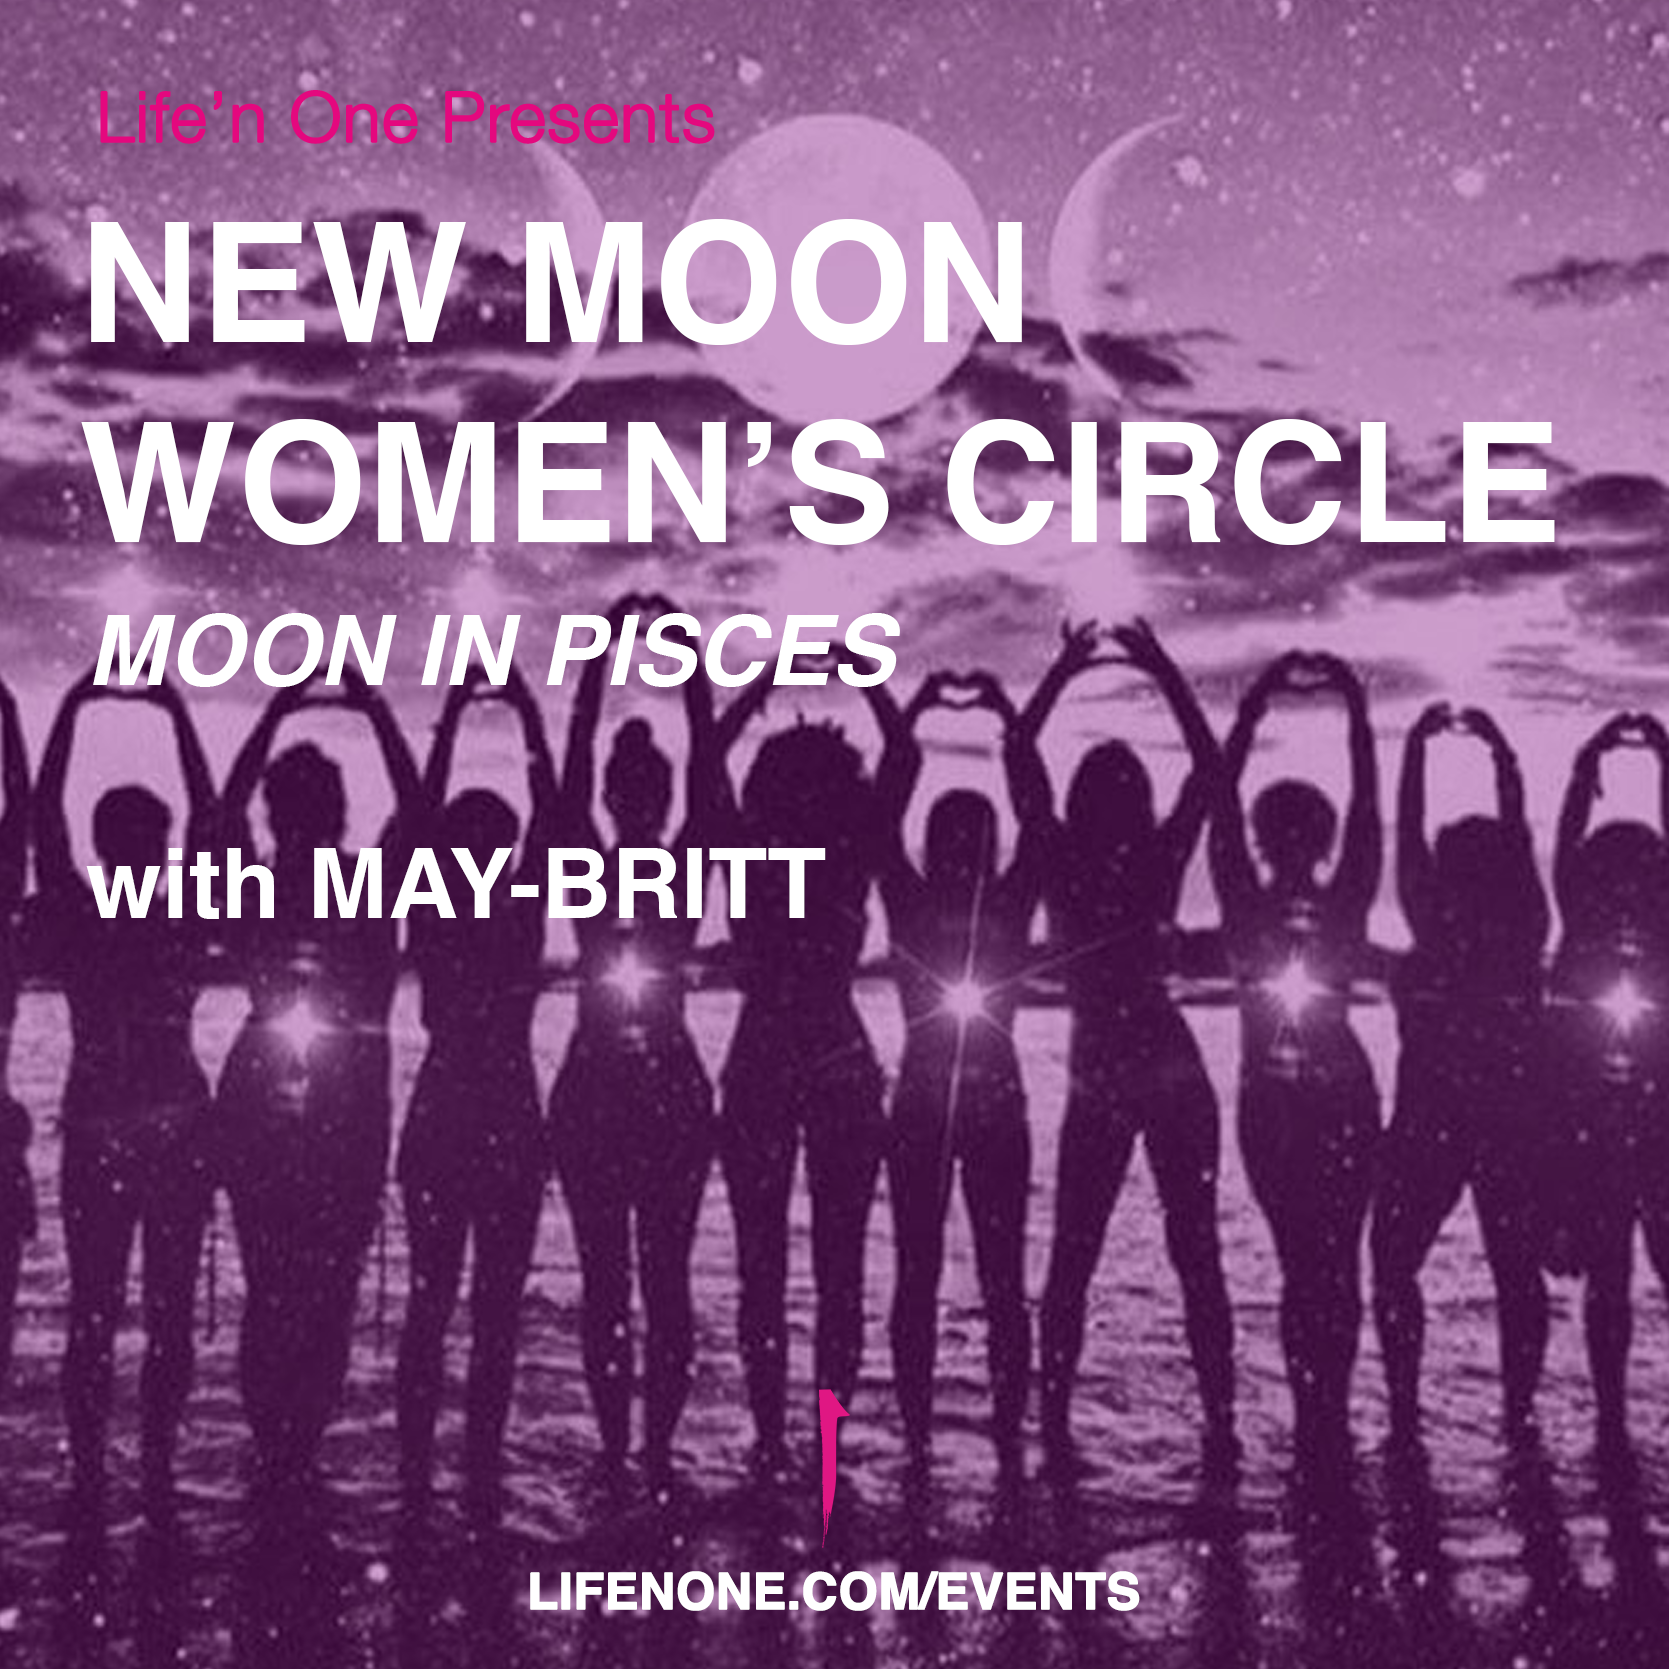 New Moon Women's Circle - Moon in Pisces